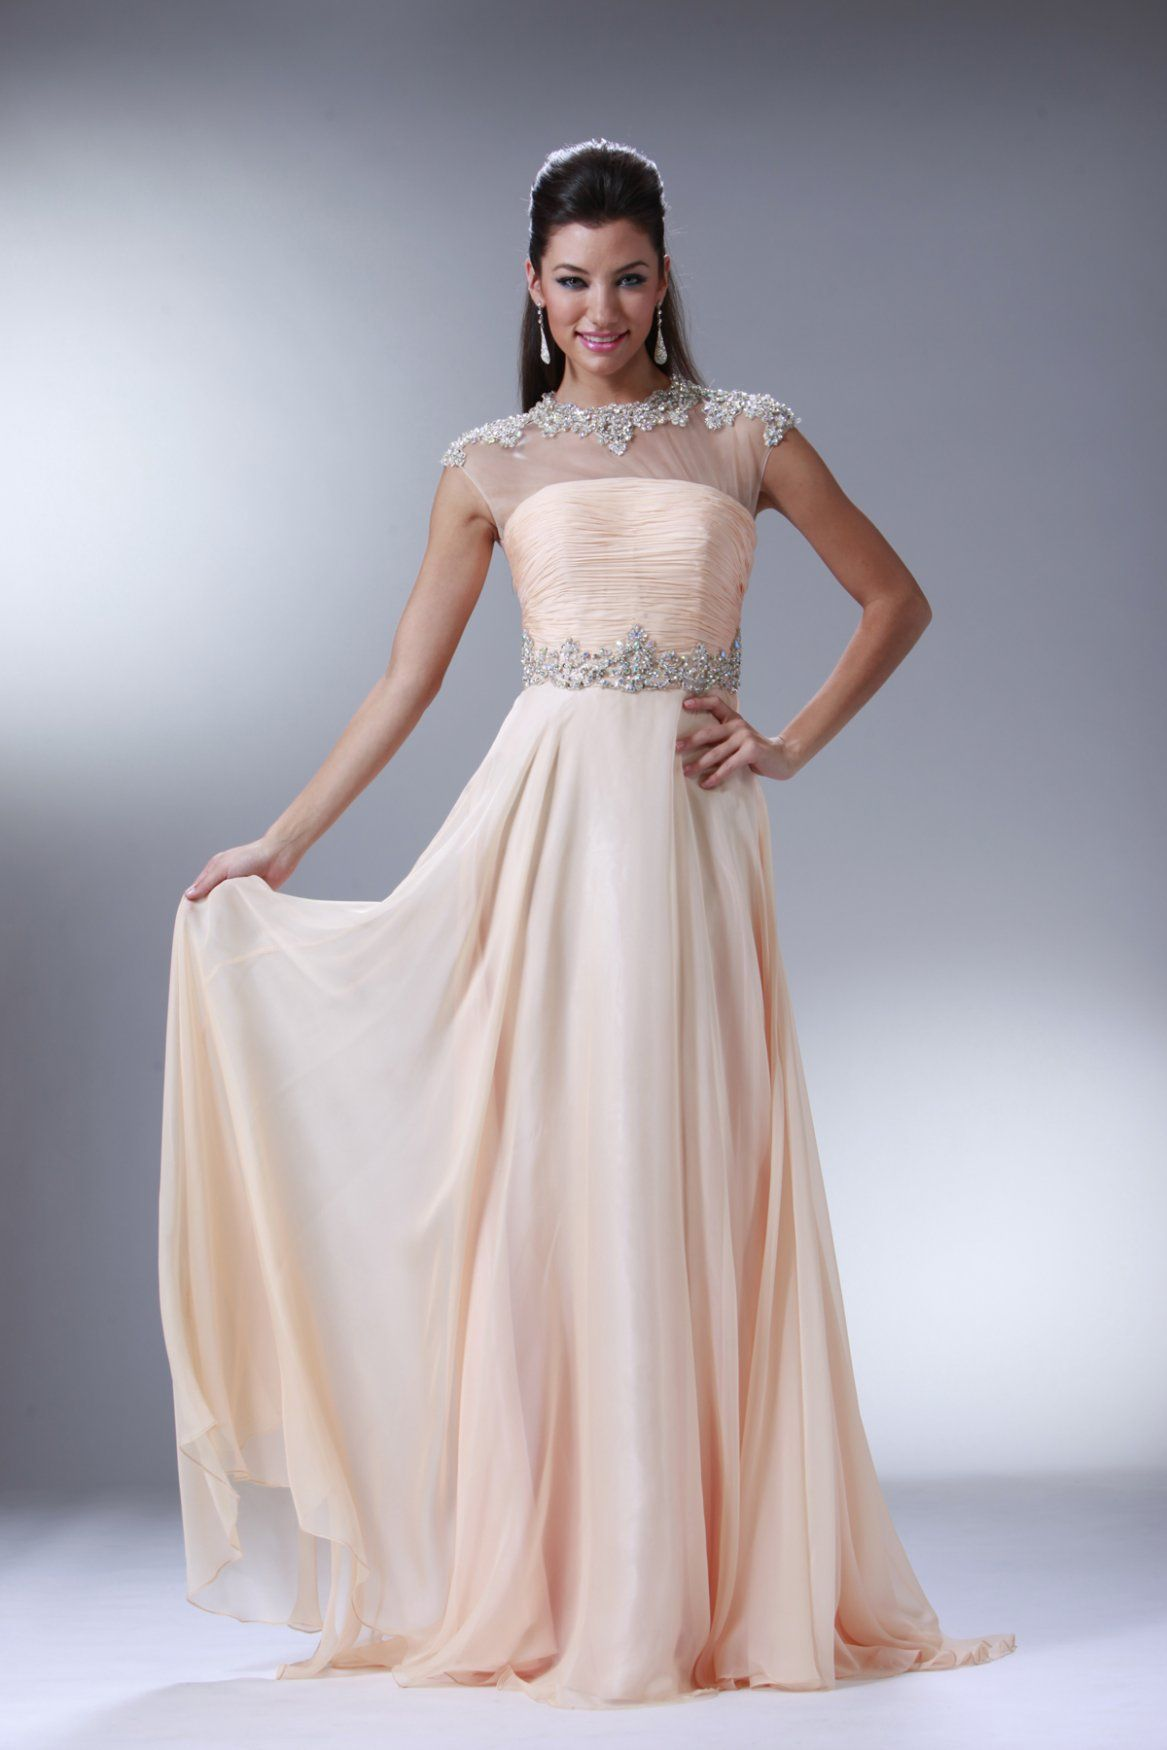 Dare to impress in this gown from cinderella divine youull be